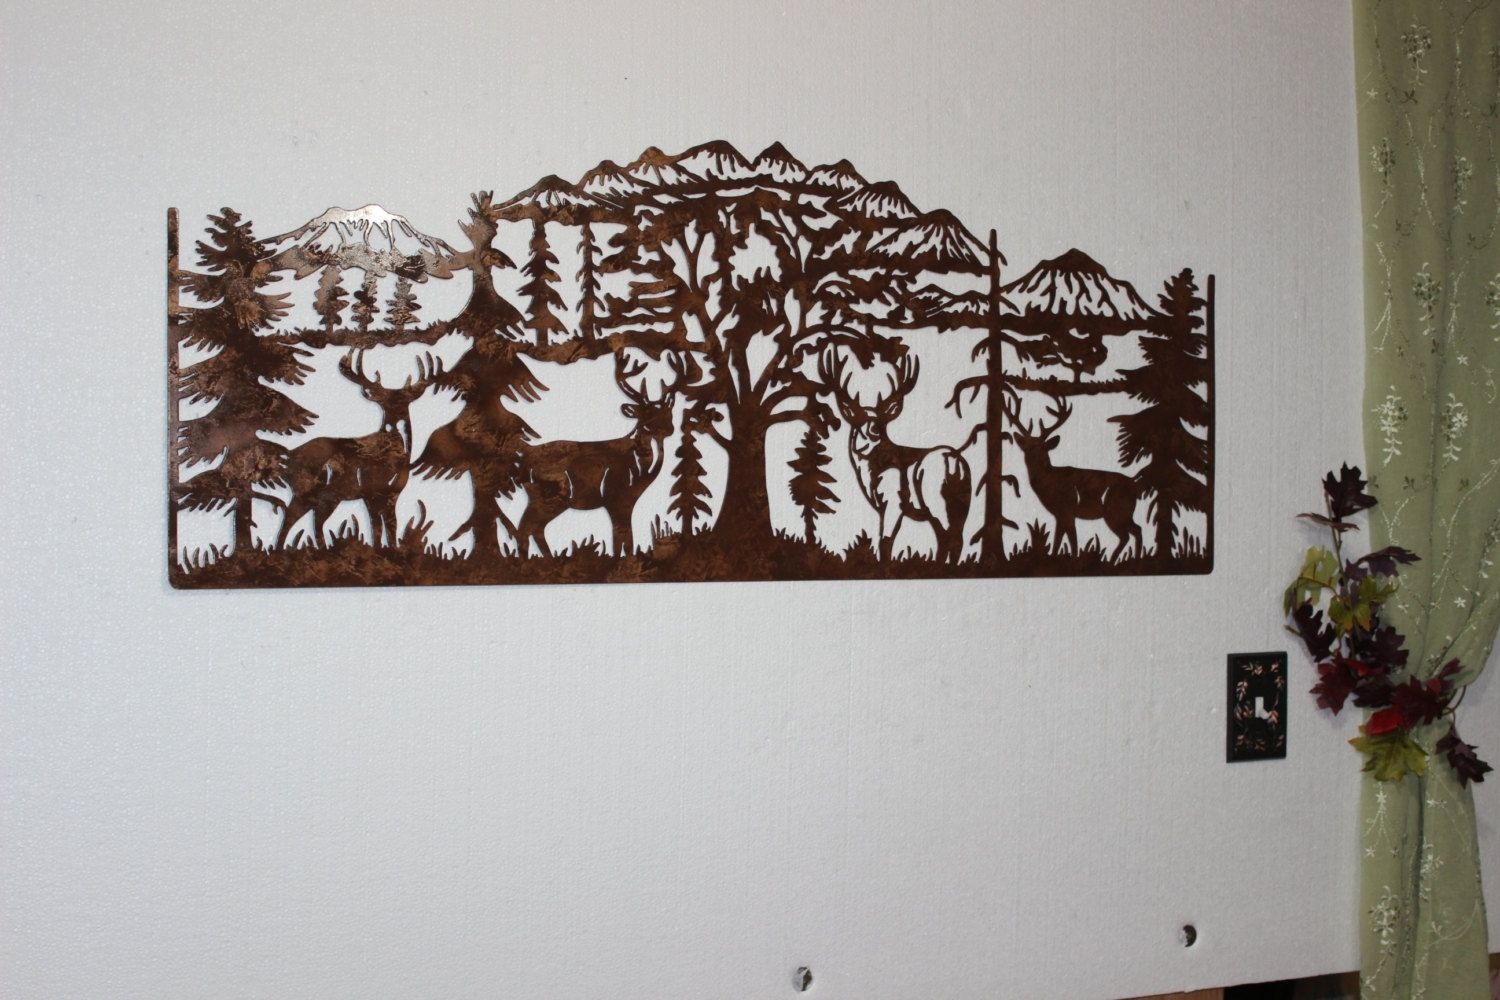 Country Wall Decor Images : Hand crafted deer and mountain with majestic bucks